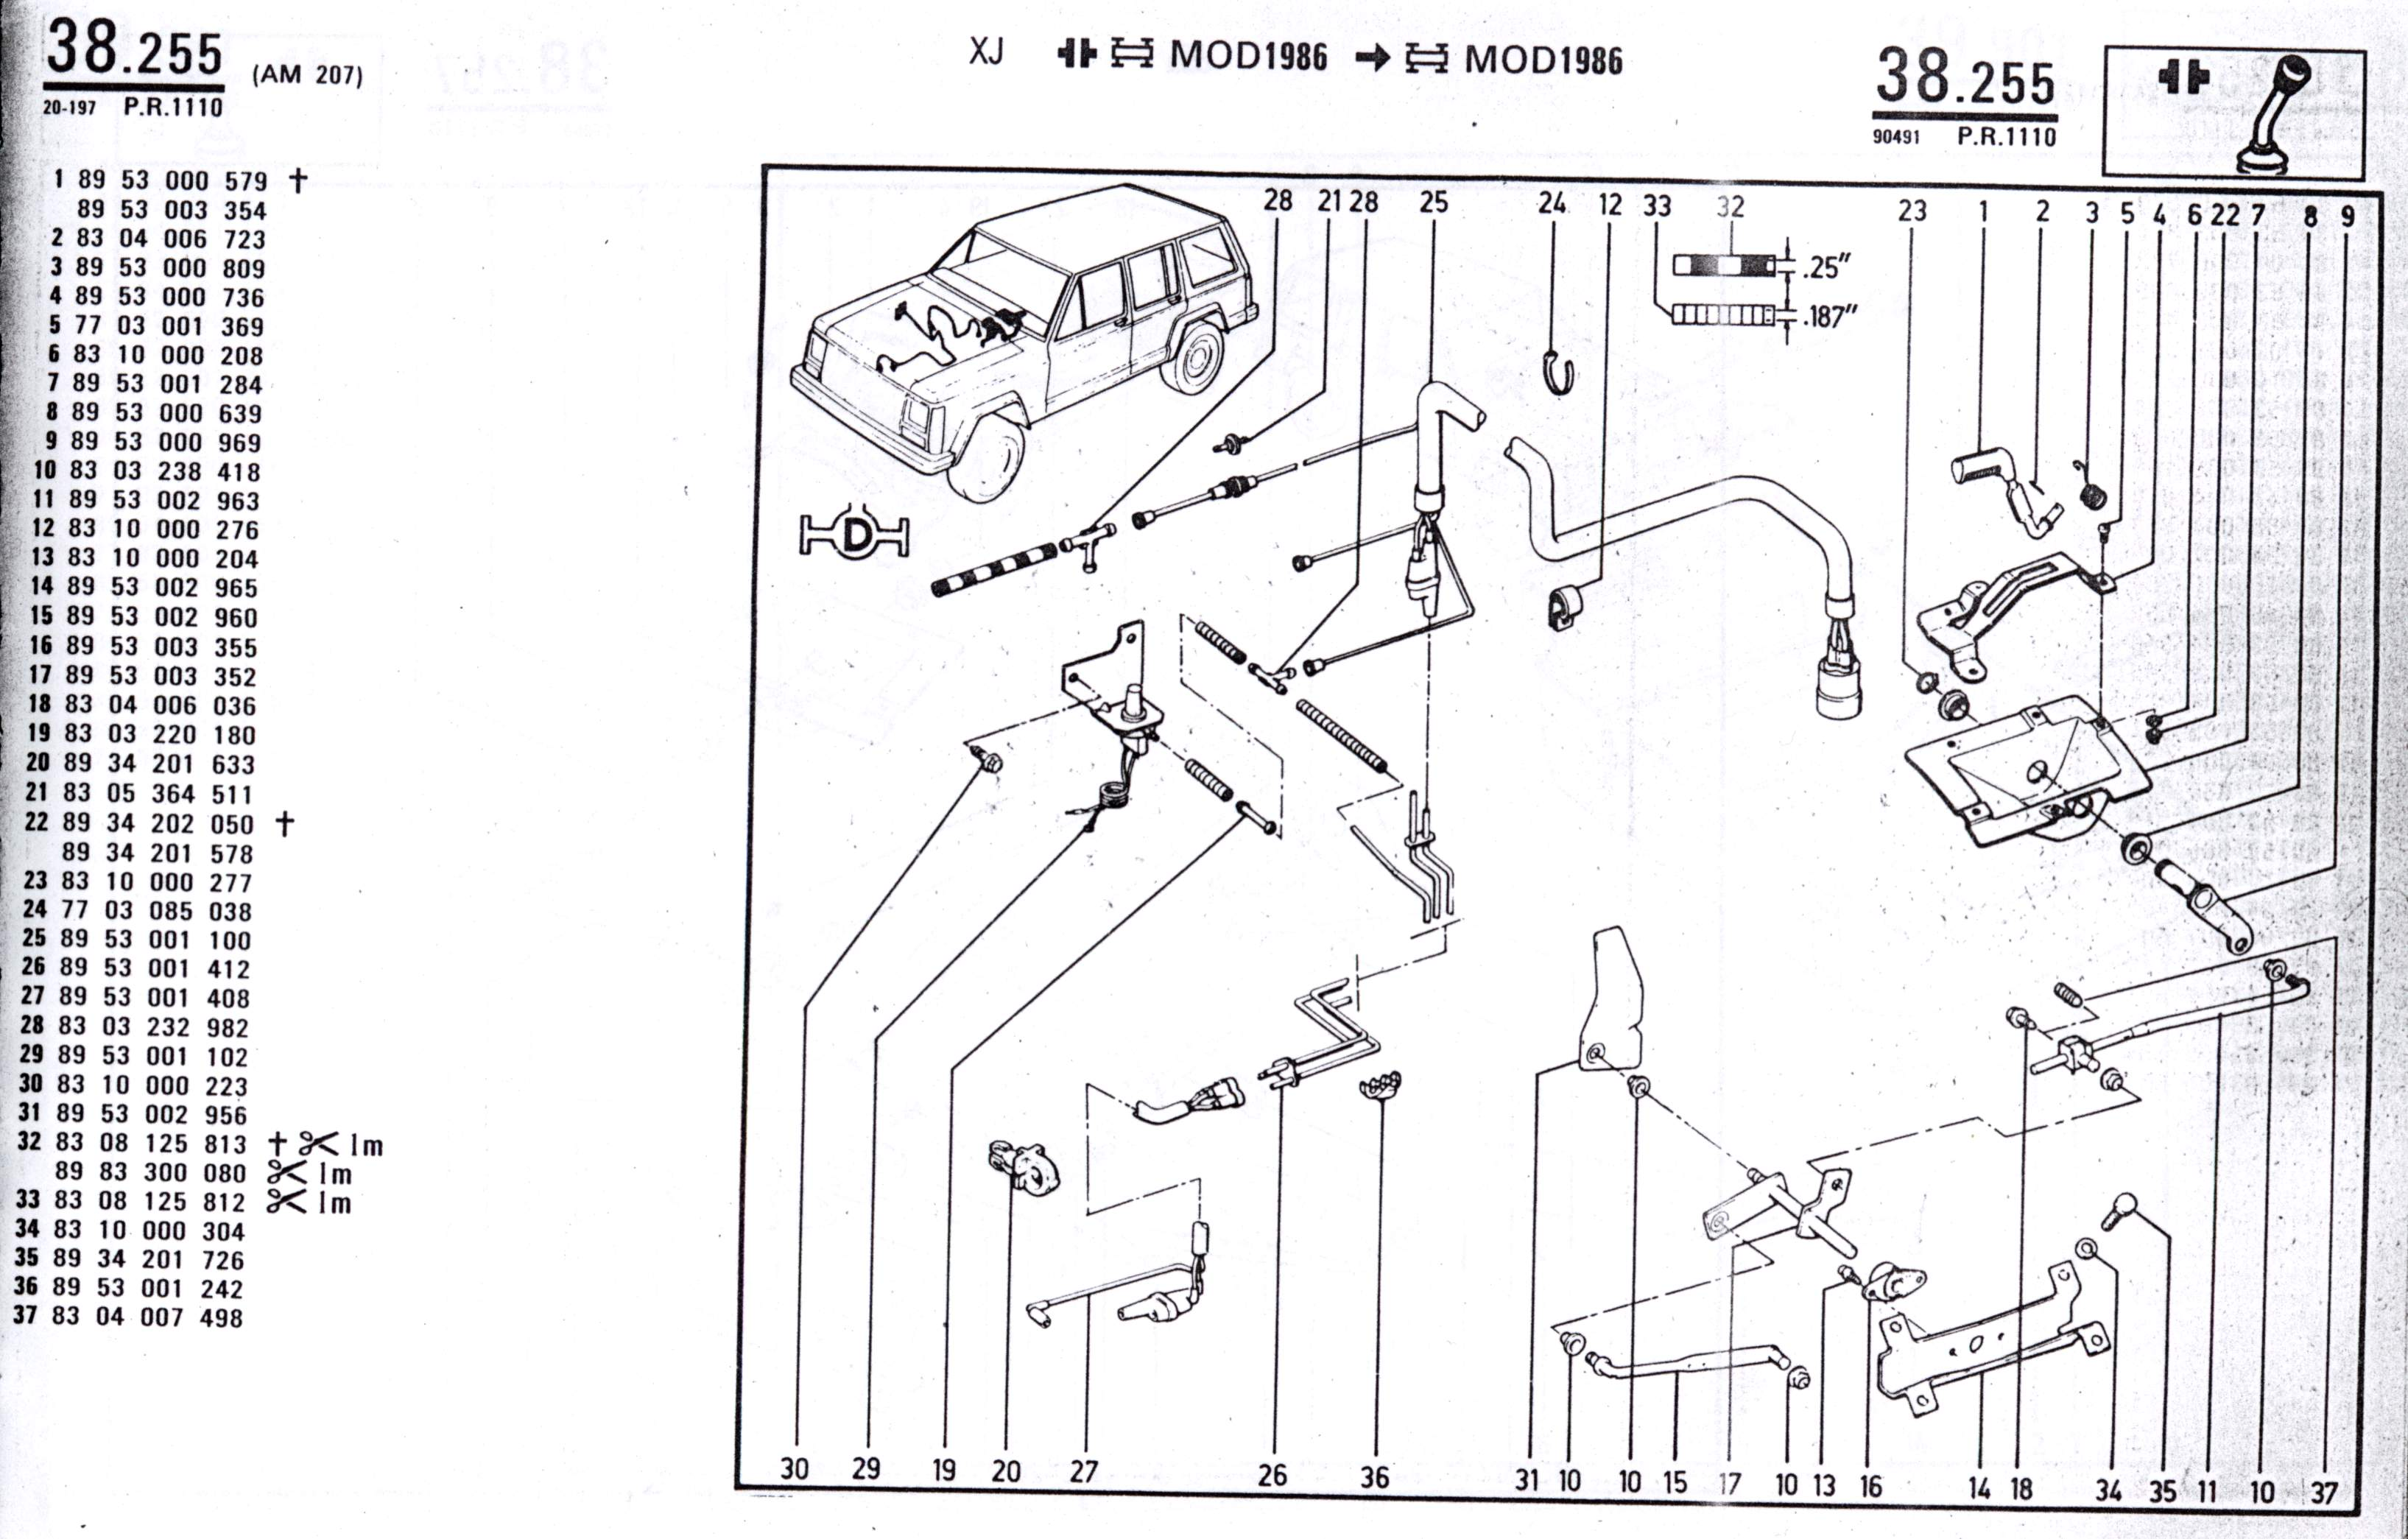 microfiches diagrams xj connection by gianmy digilandercommand trac vacuum hoses diagram (xj 1986, t case np